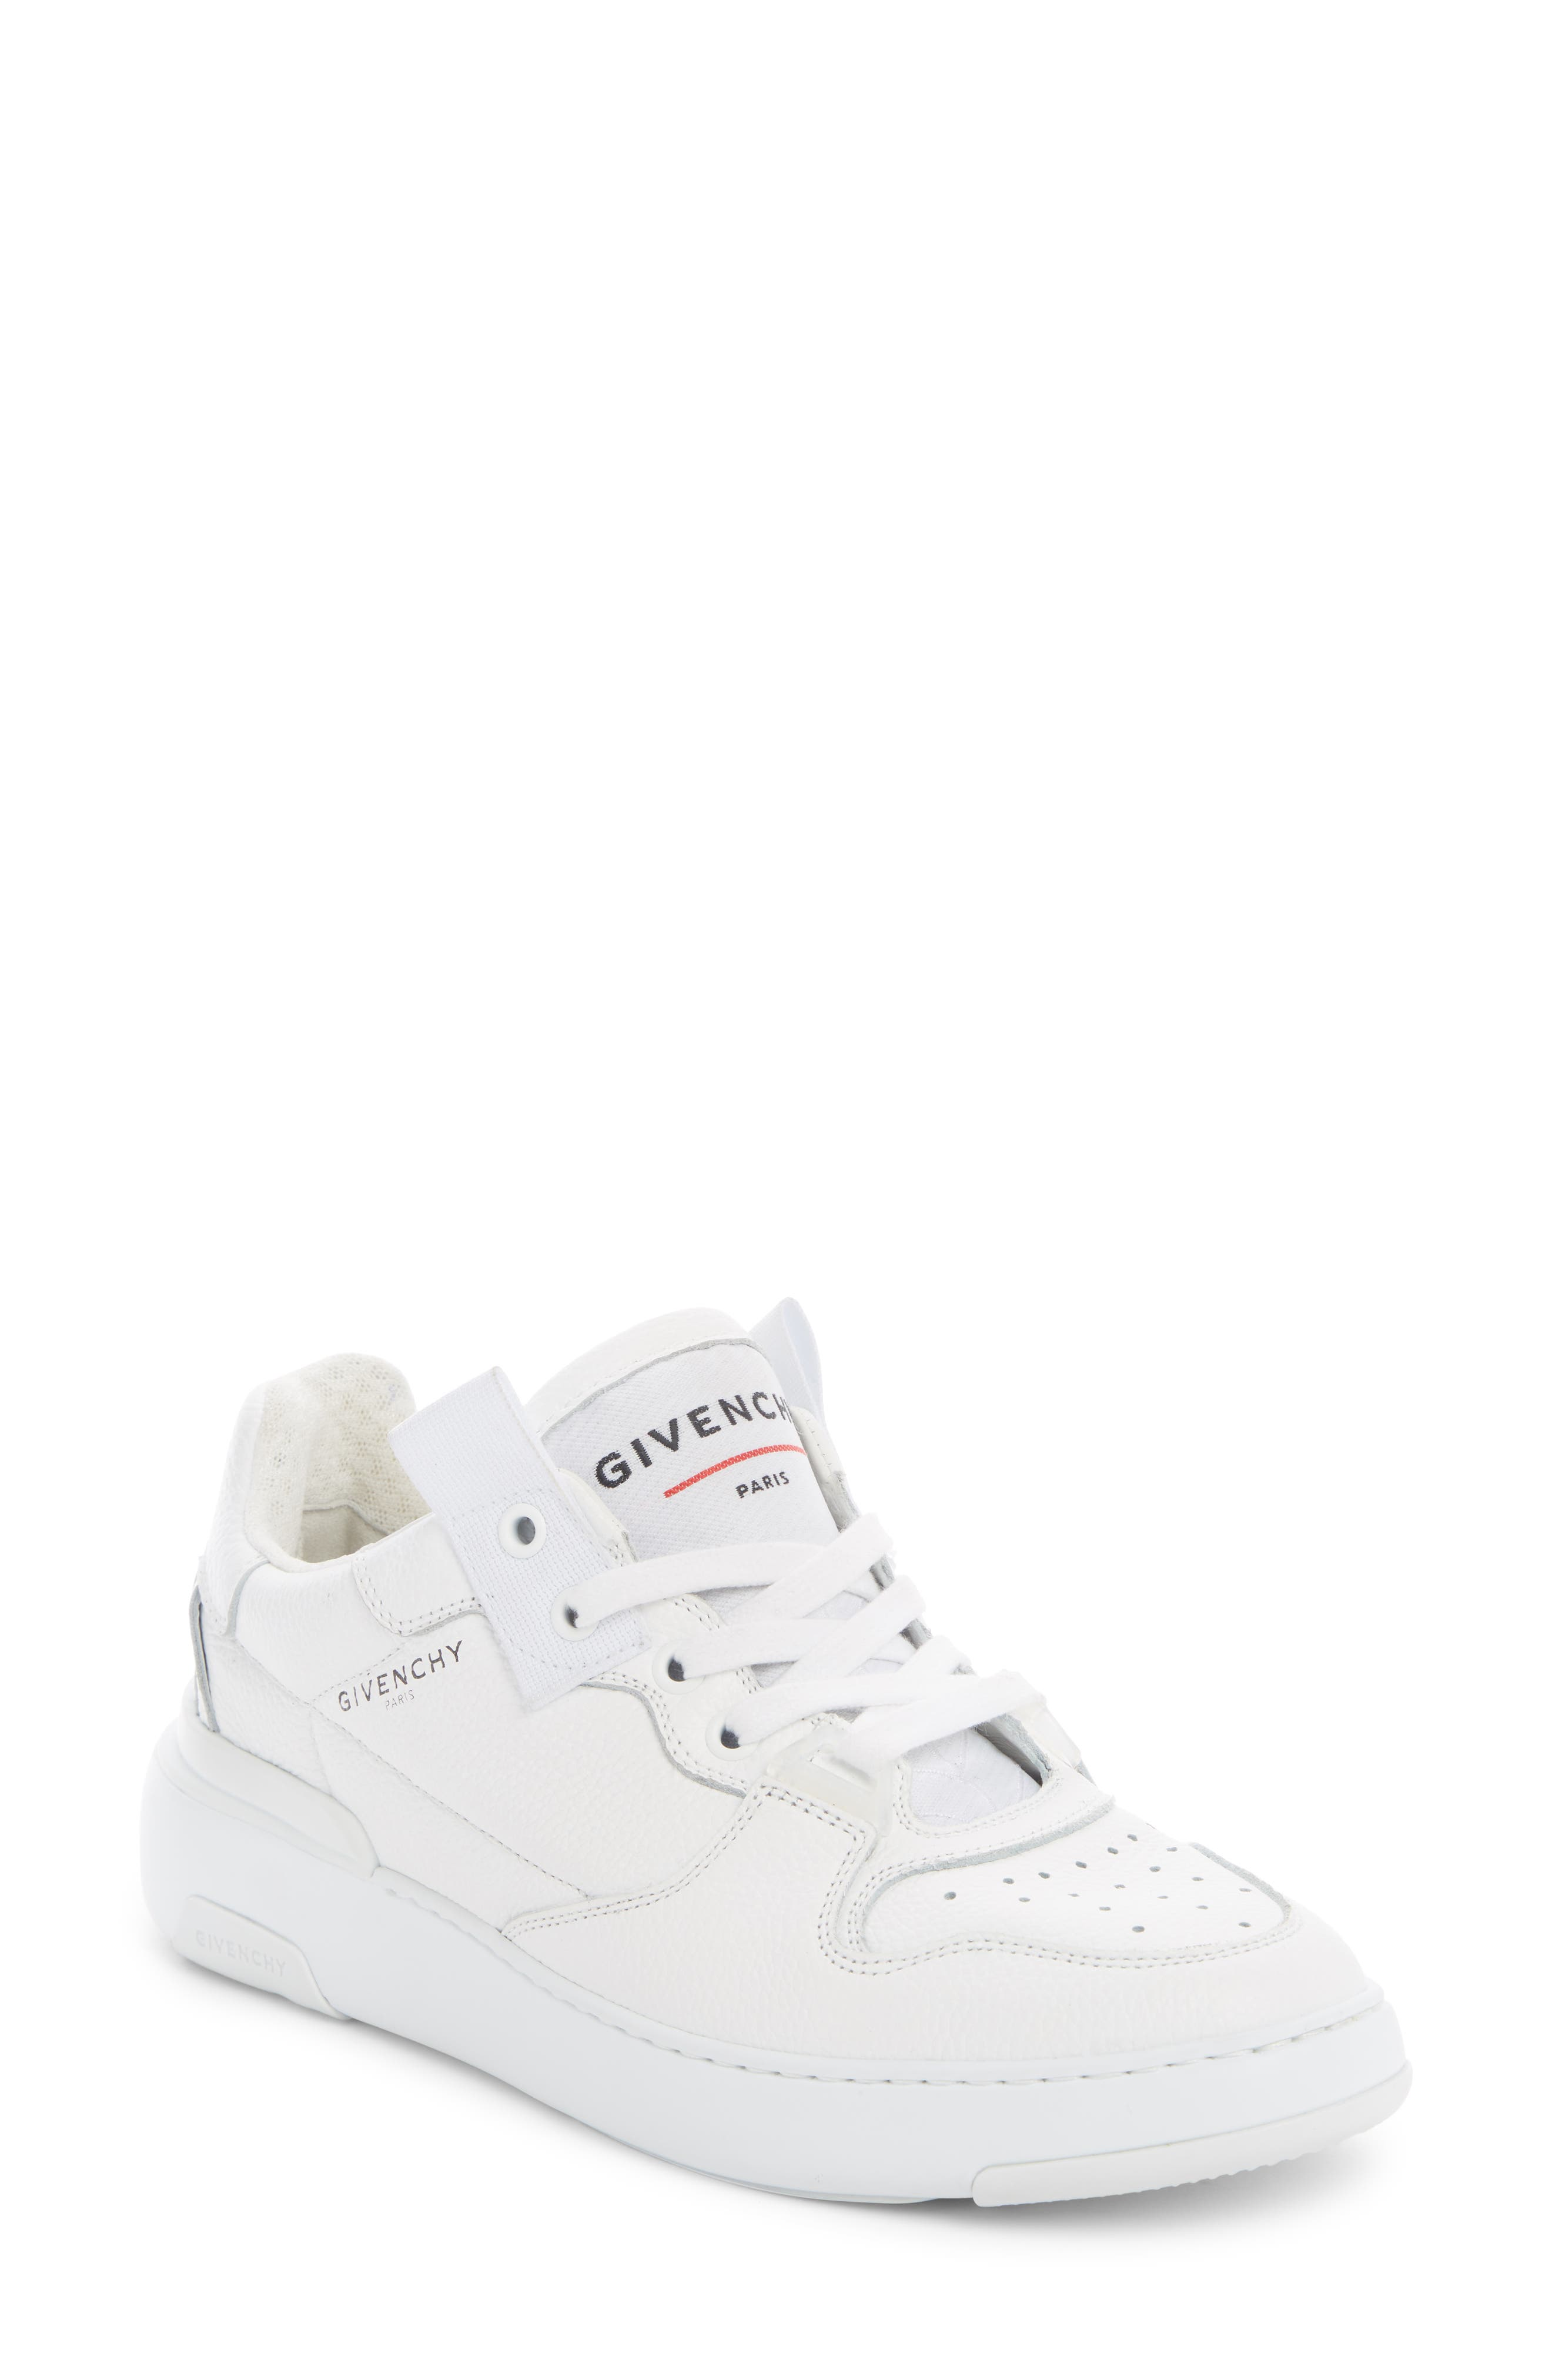 Givenchy Wing Low Top Sneaker (Women